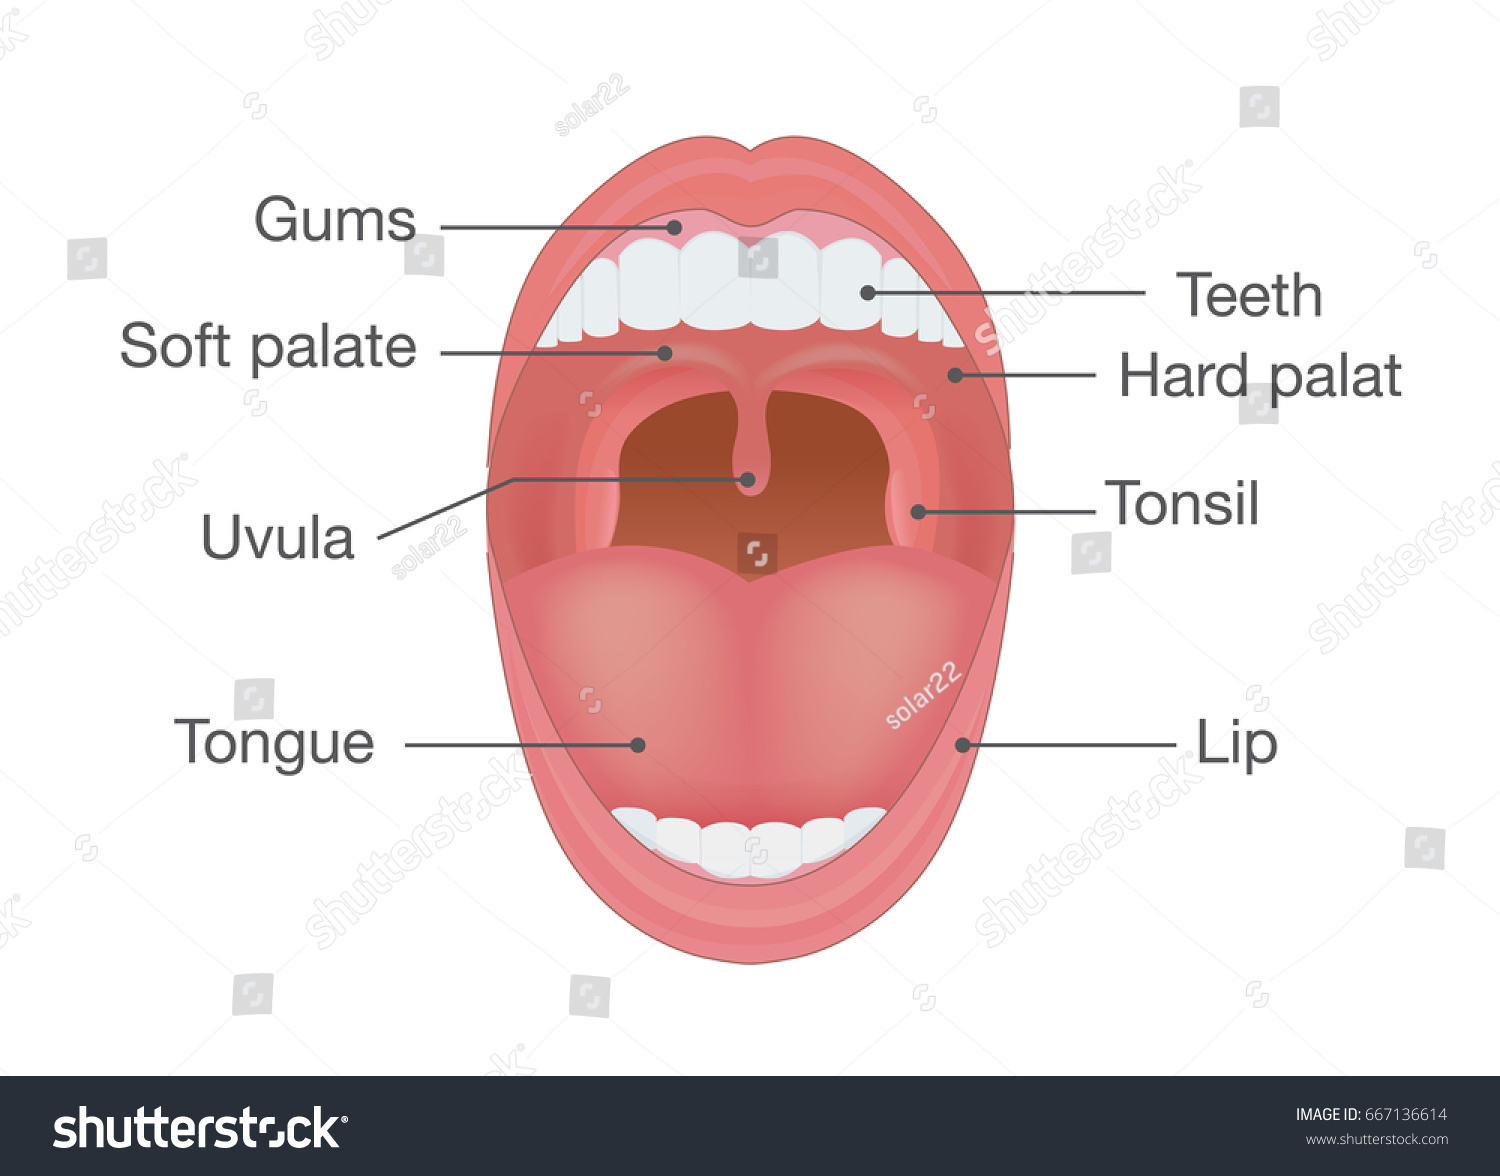 Anatomy Human Mouth Illustration About Body Stock Vector Royalty